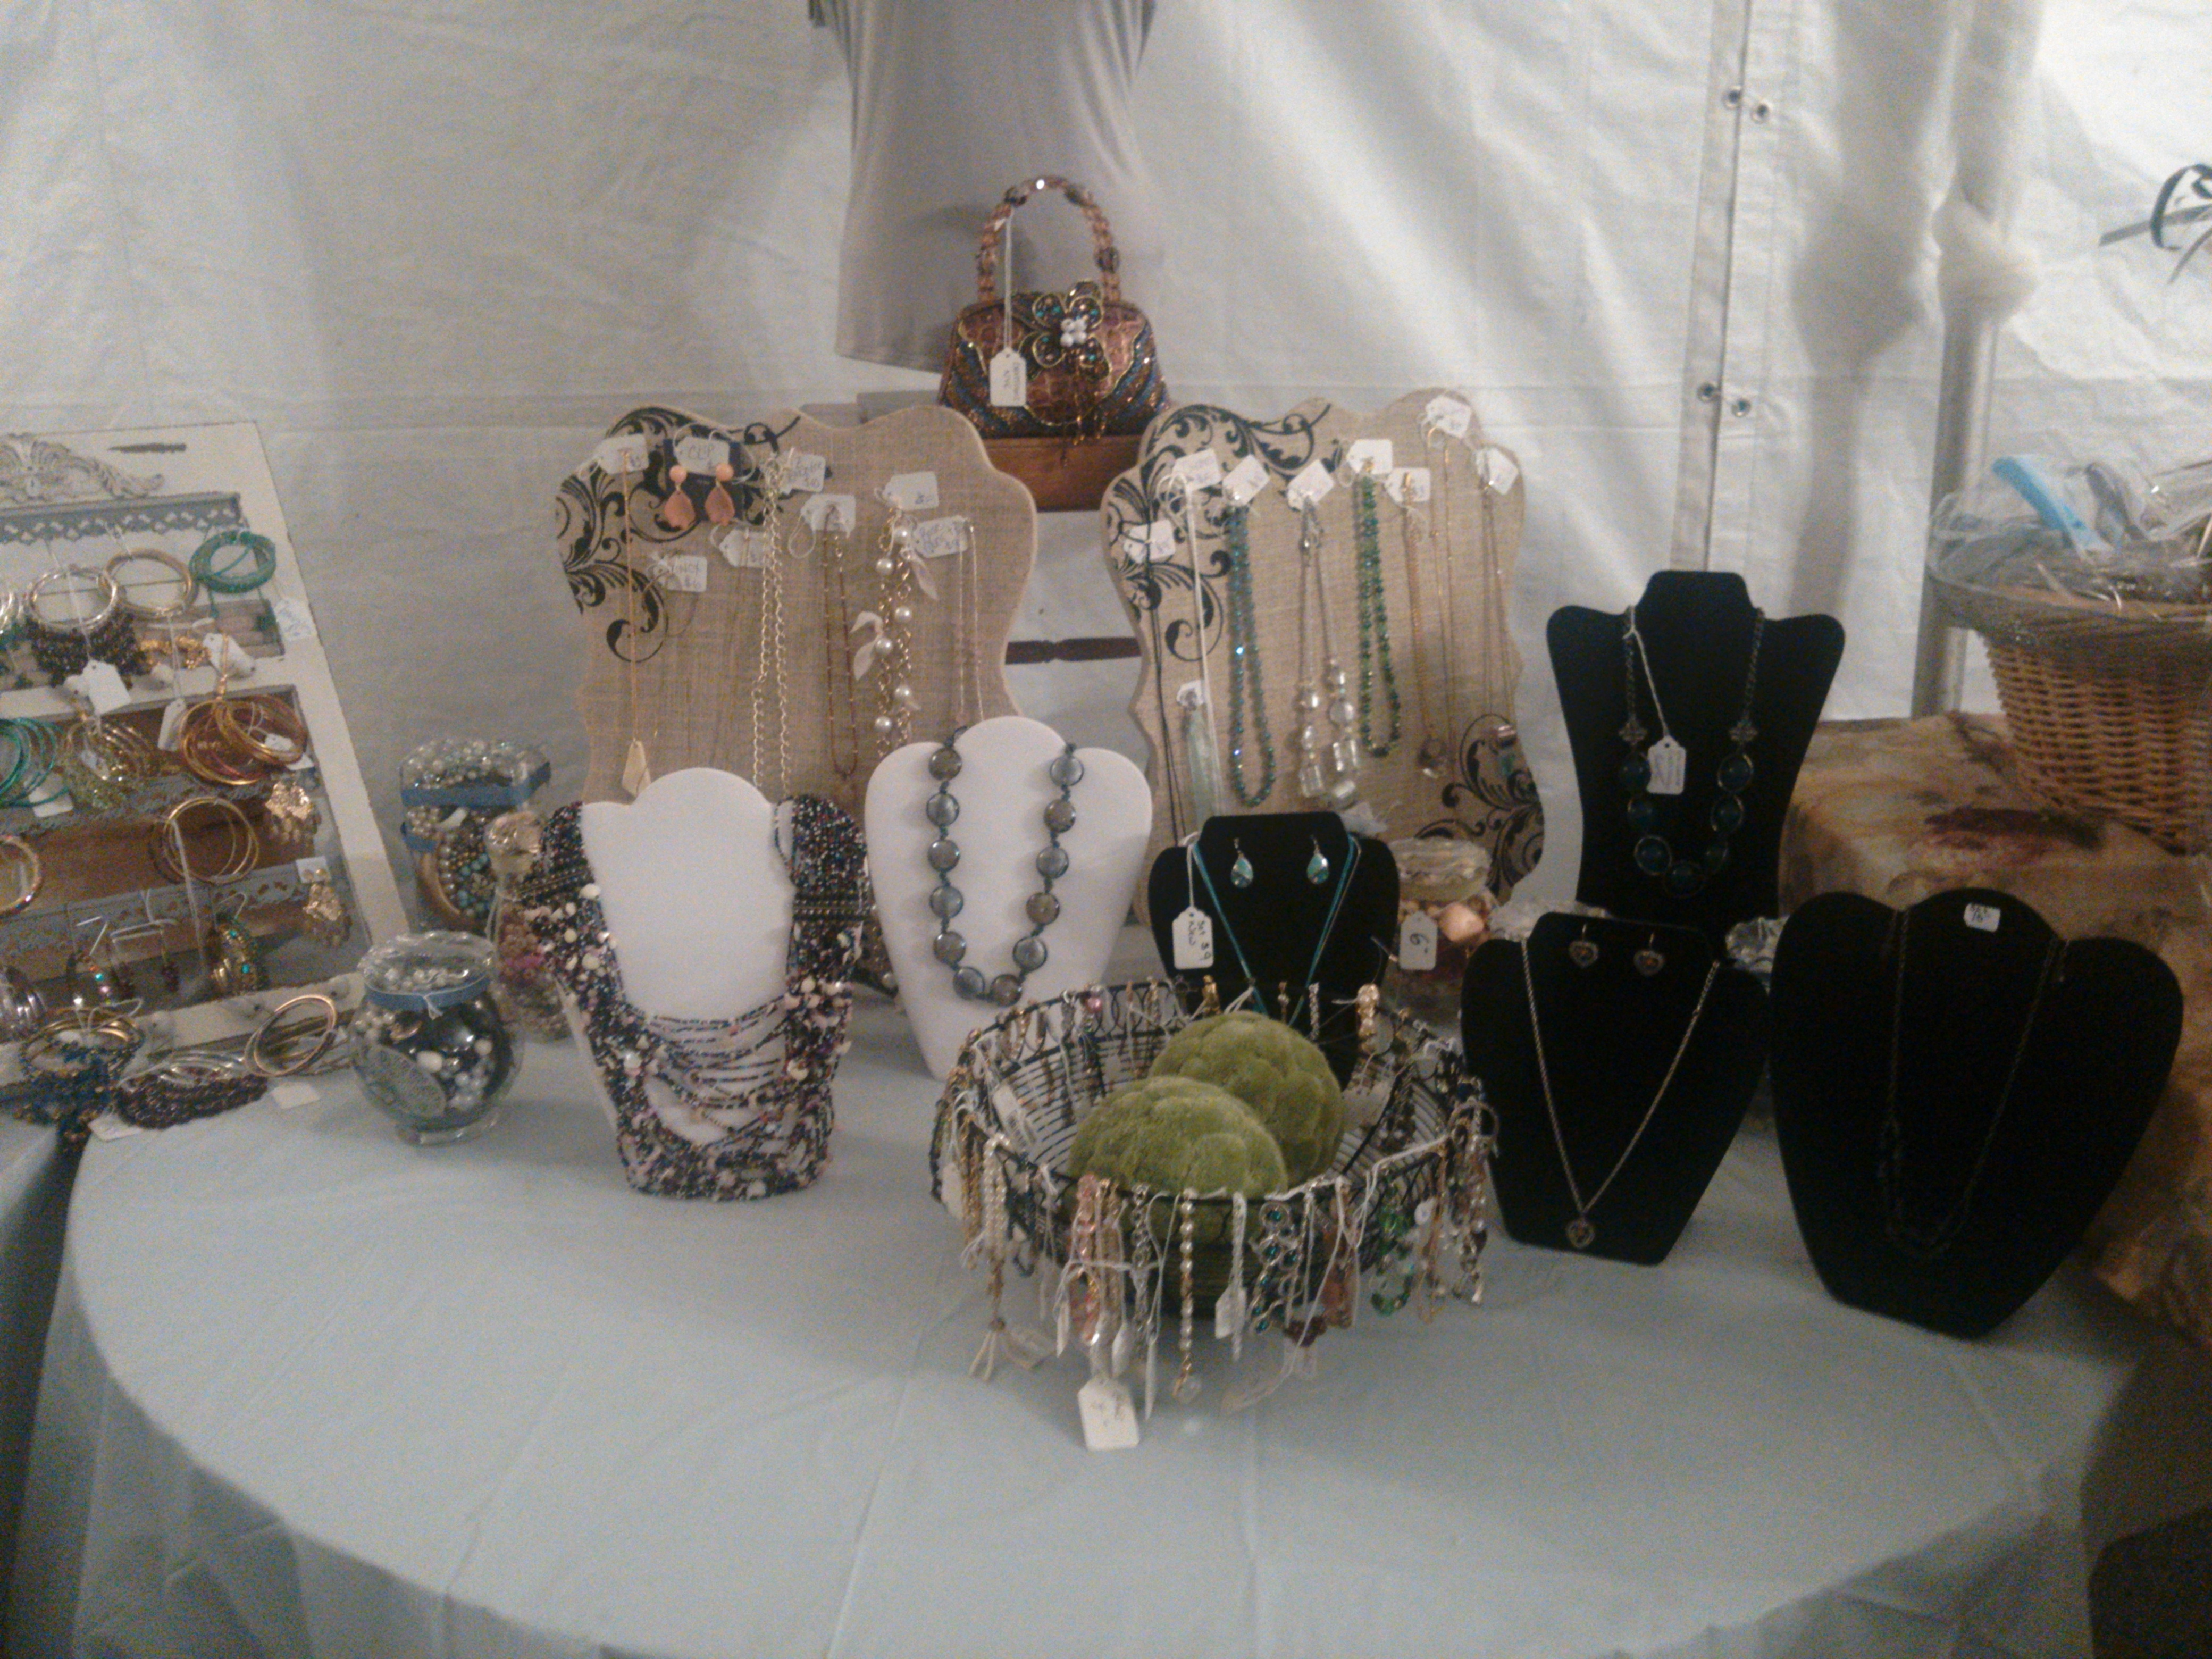 Anderson Animal Shelter Jewelry Fair South Elgin IL 2015 - 2016